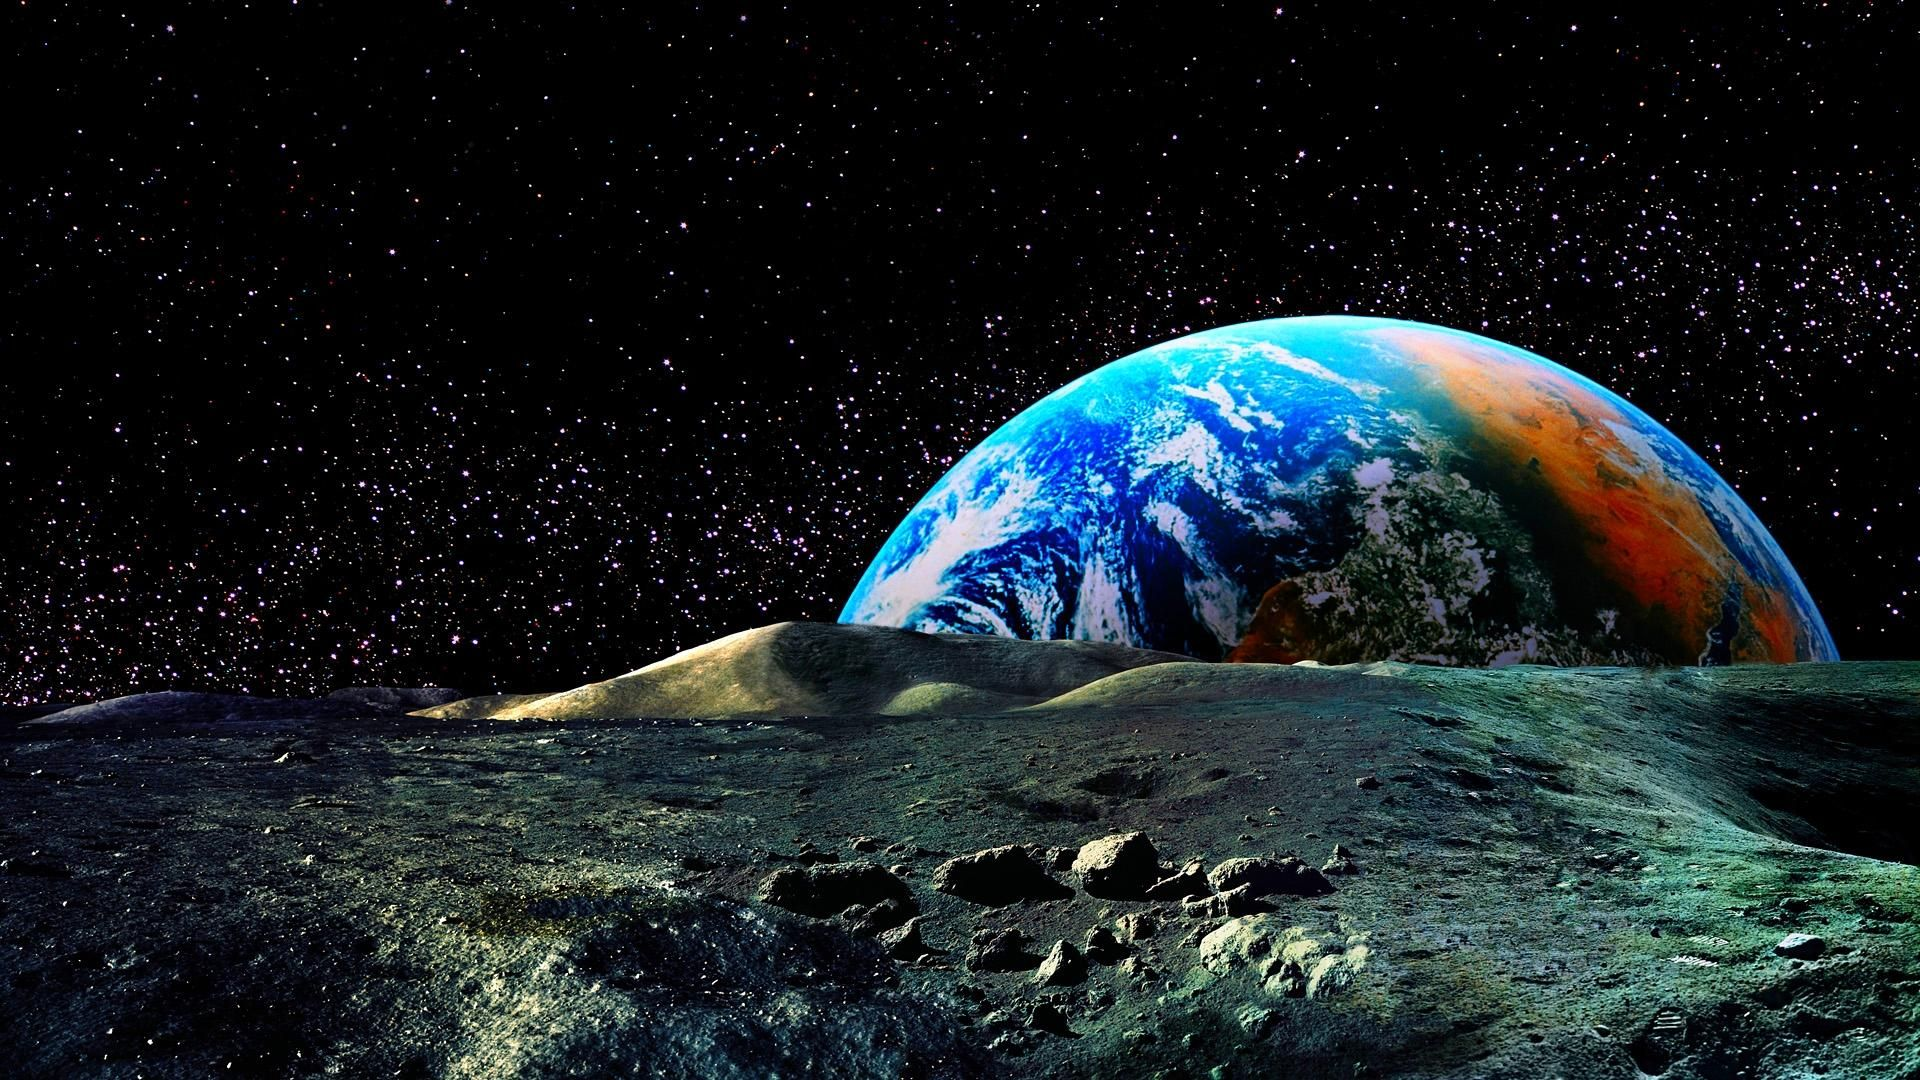 beautiful planet earth wallpaper (page 3) - pics about space | space